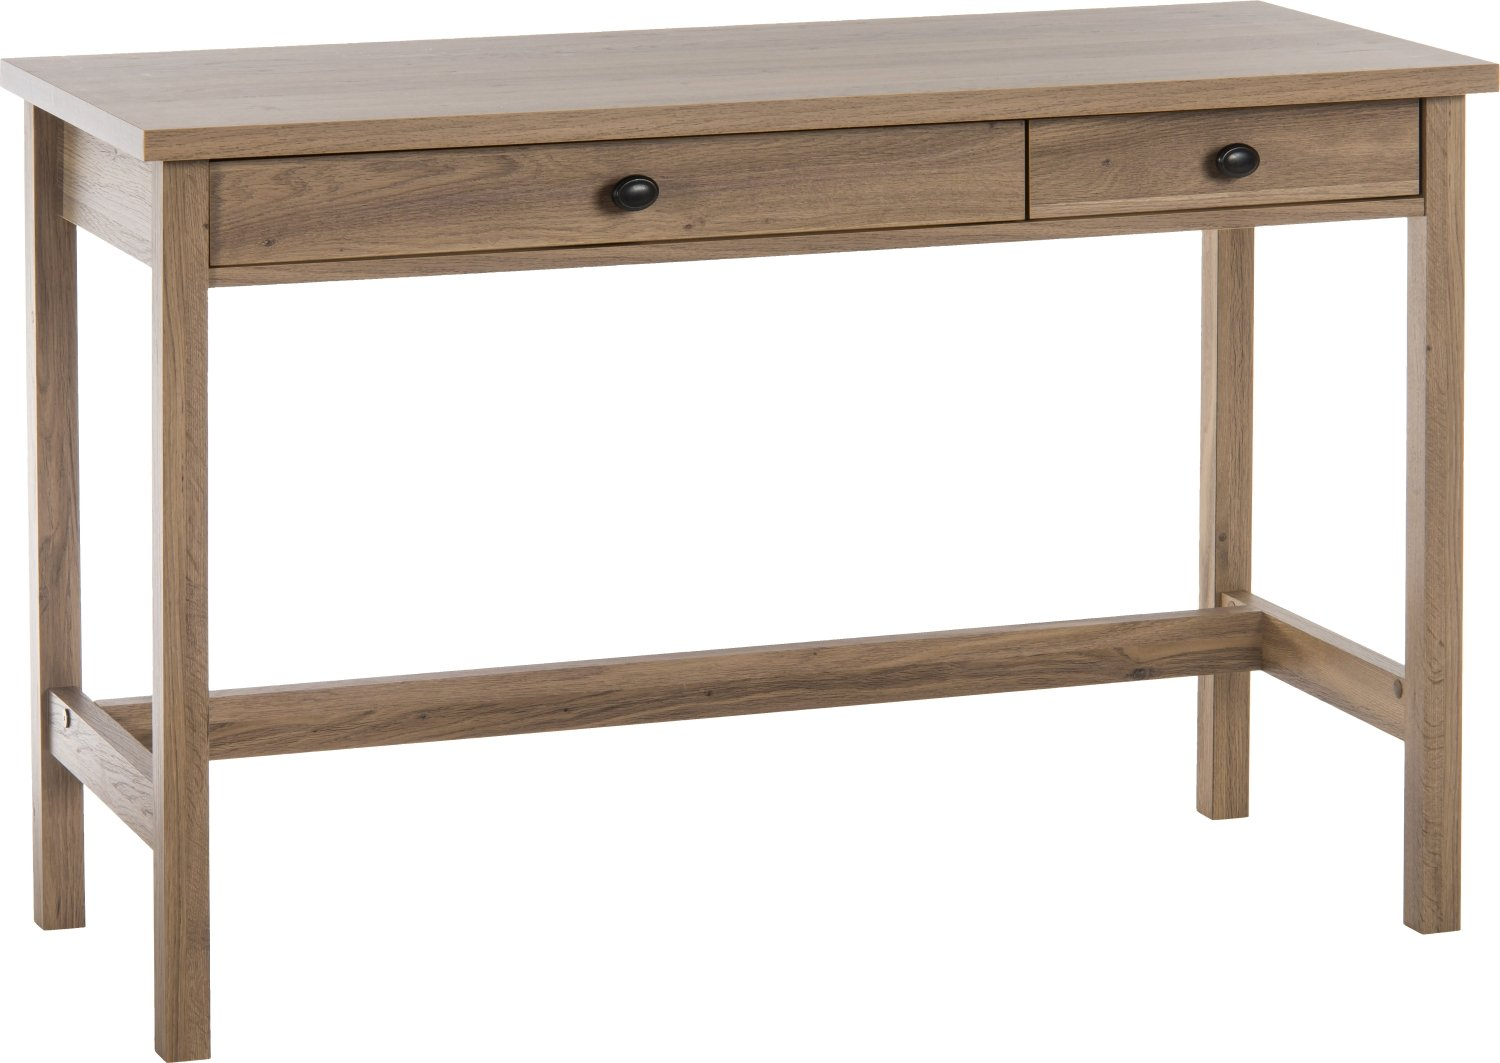 Teknik Study Desk Salt Oak - (w) 43mm x (d) 43mm